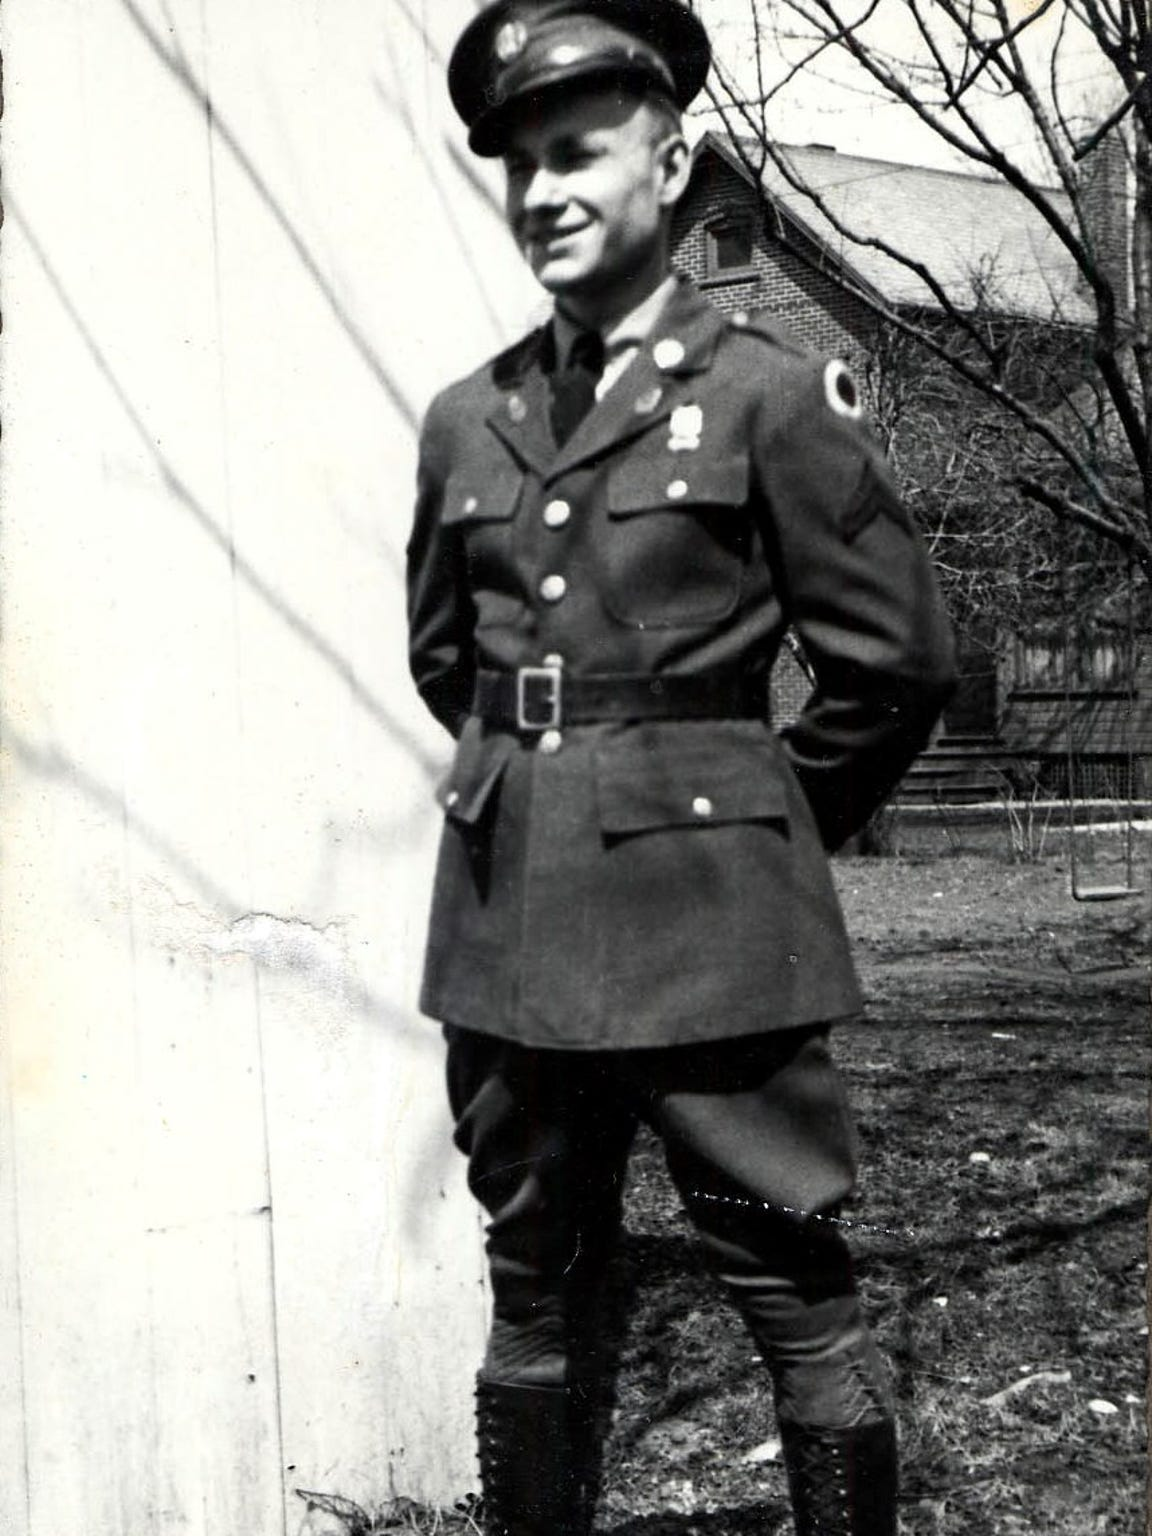 Jim McGrady, 95, served as a flight instructor during